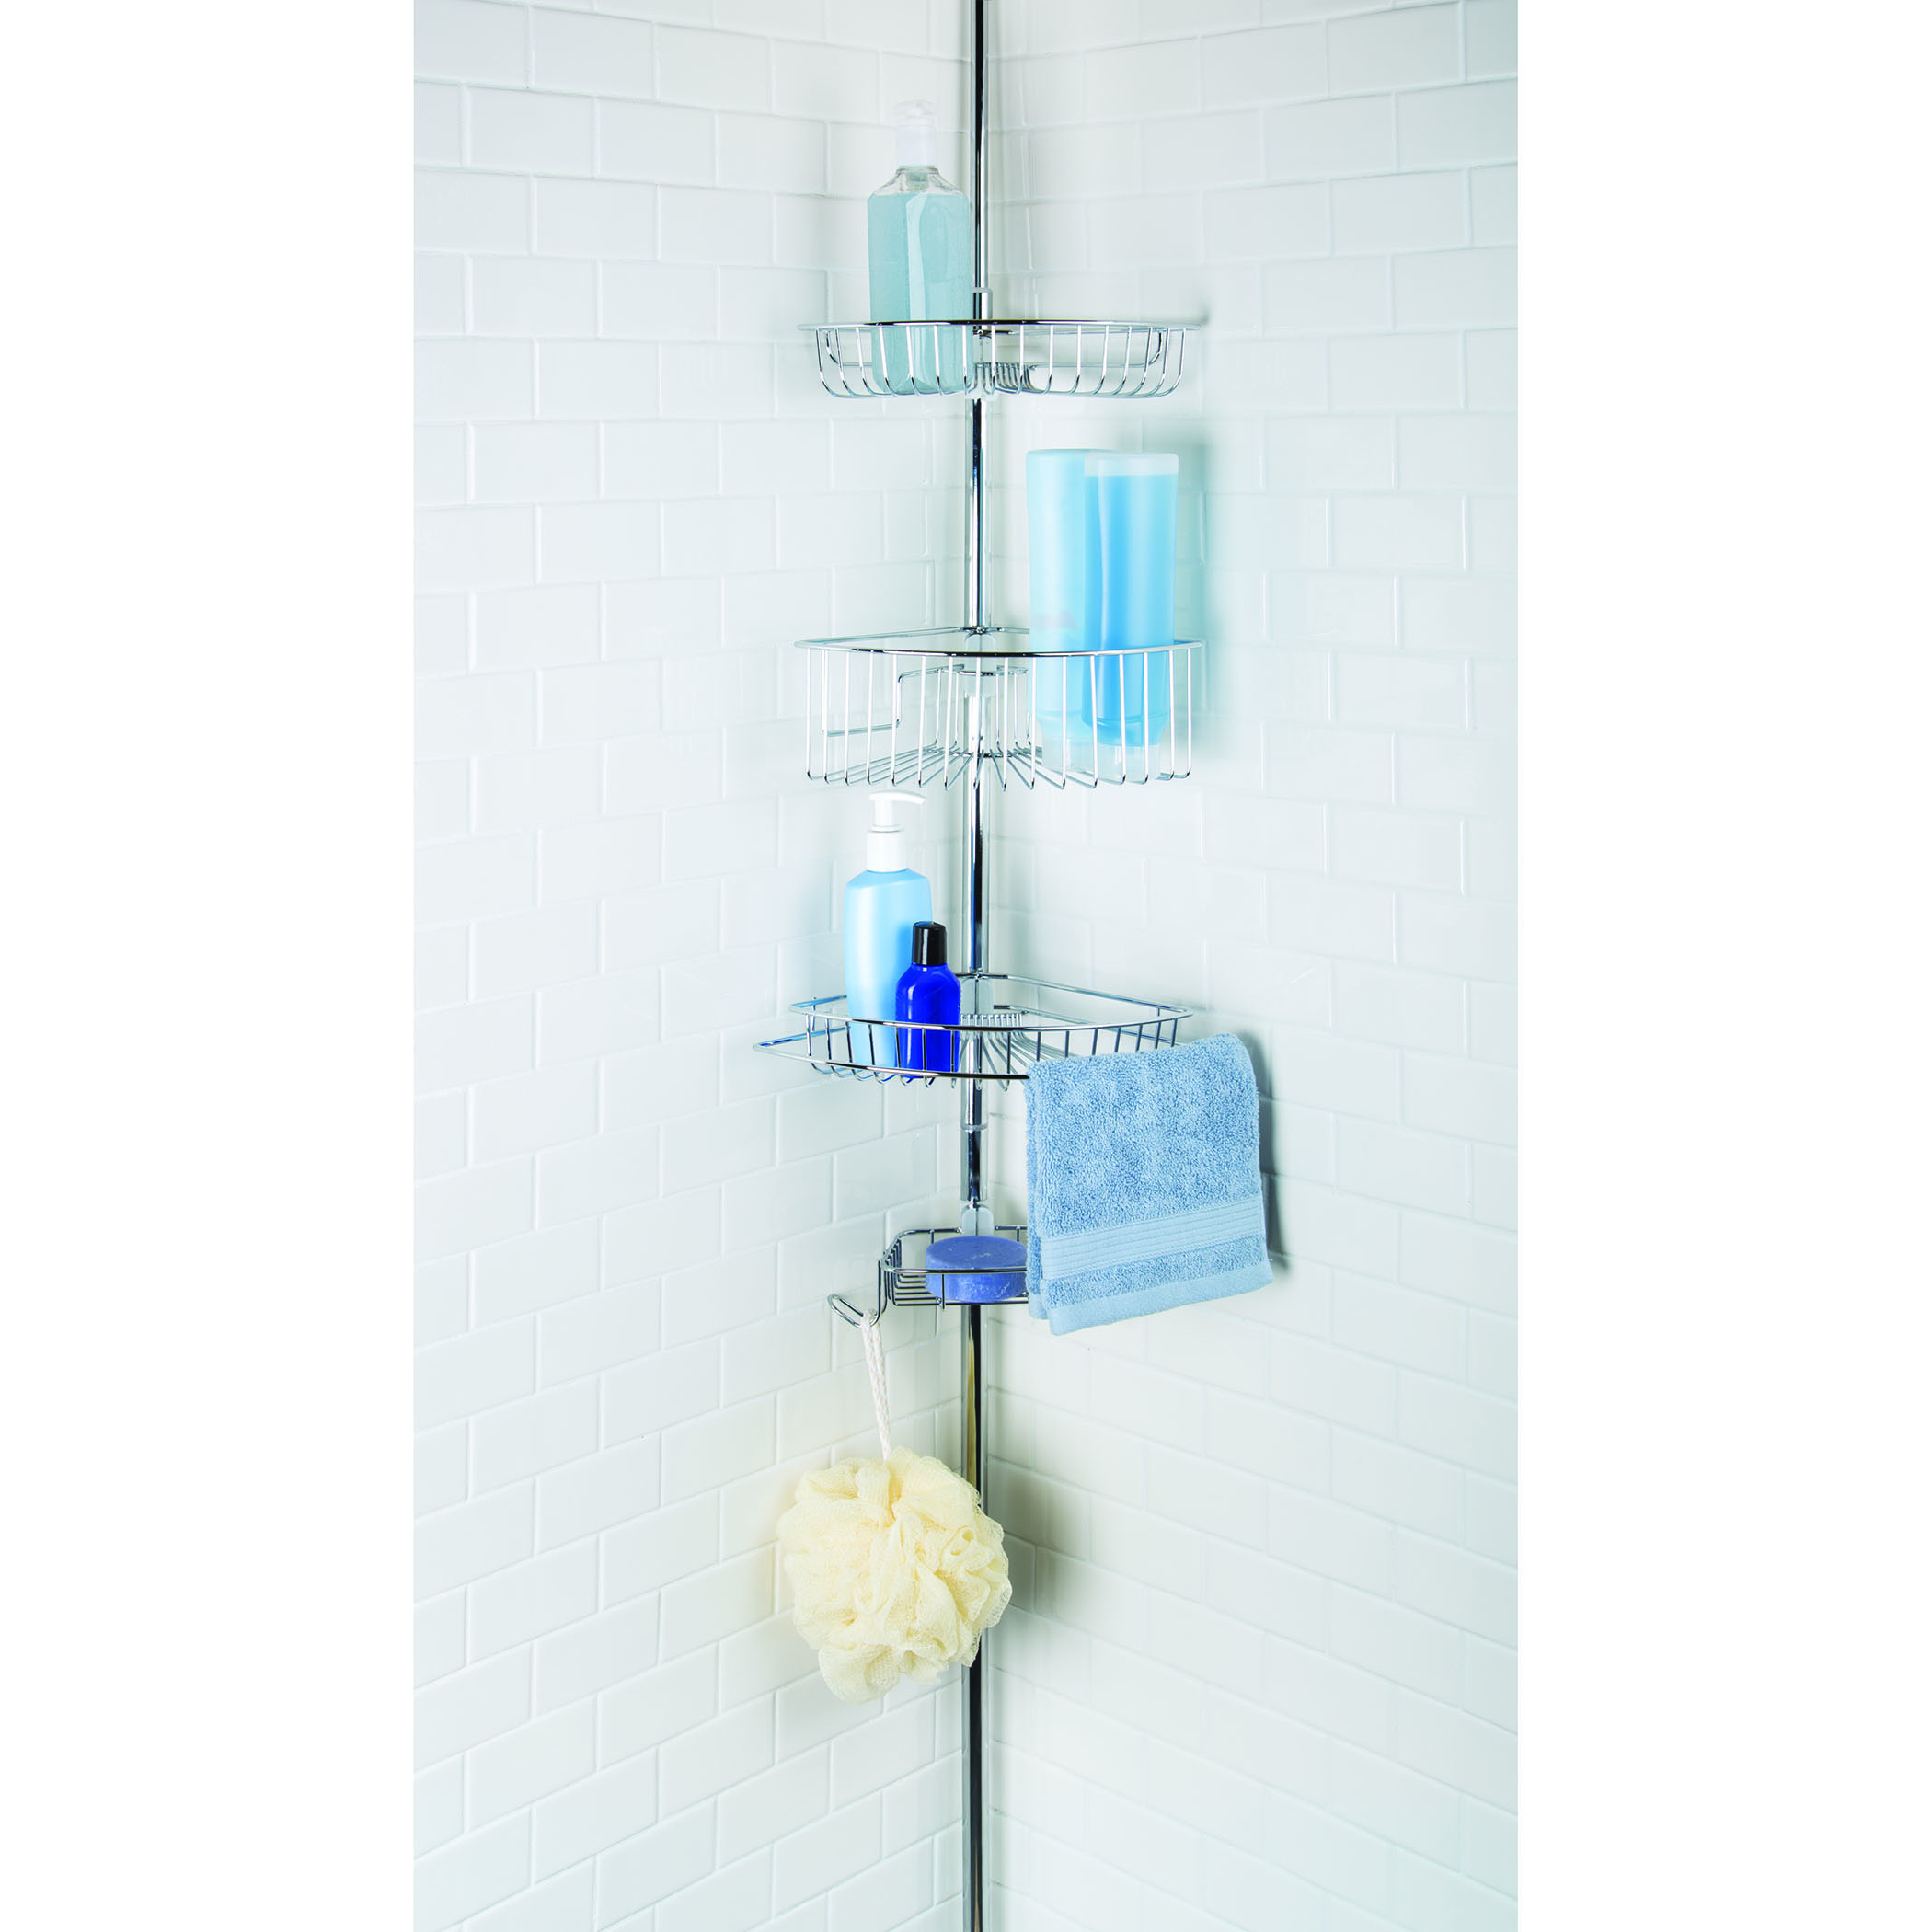 Tension Pole Corner Shower Caddy homecrate three tier corner tension pole shower caddy 9/ft height